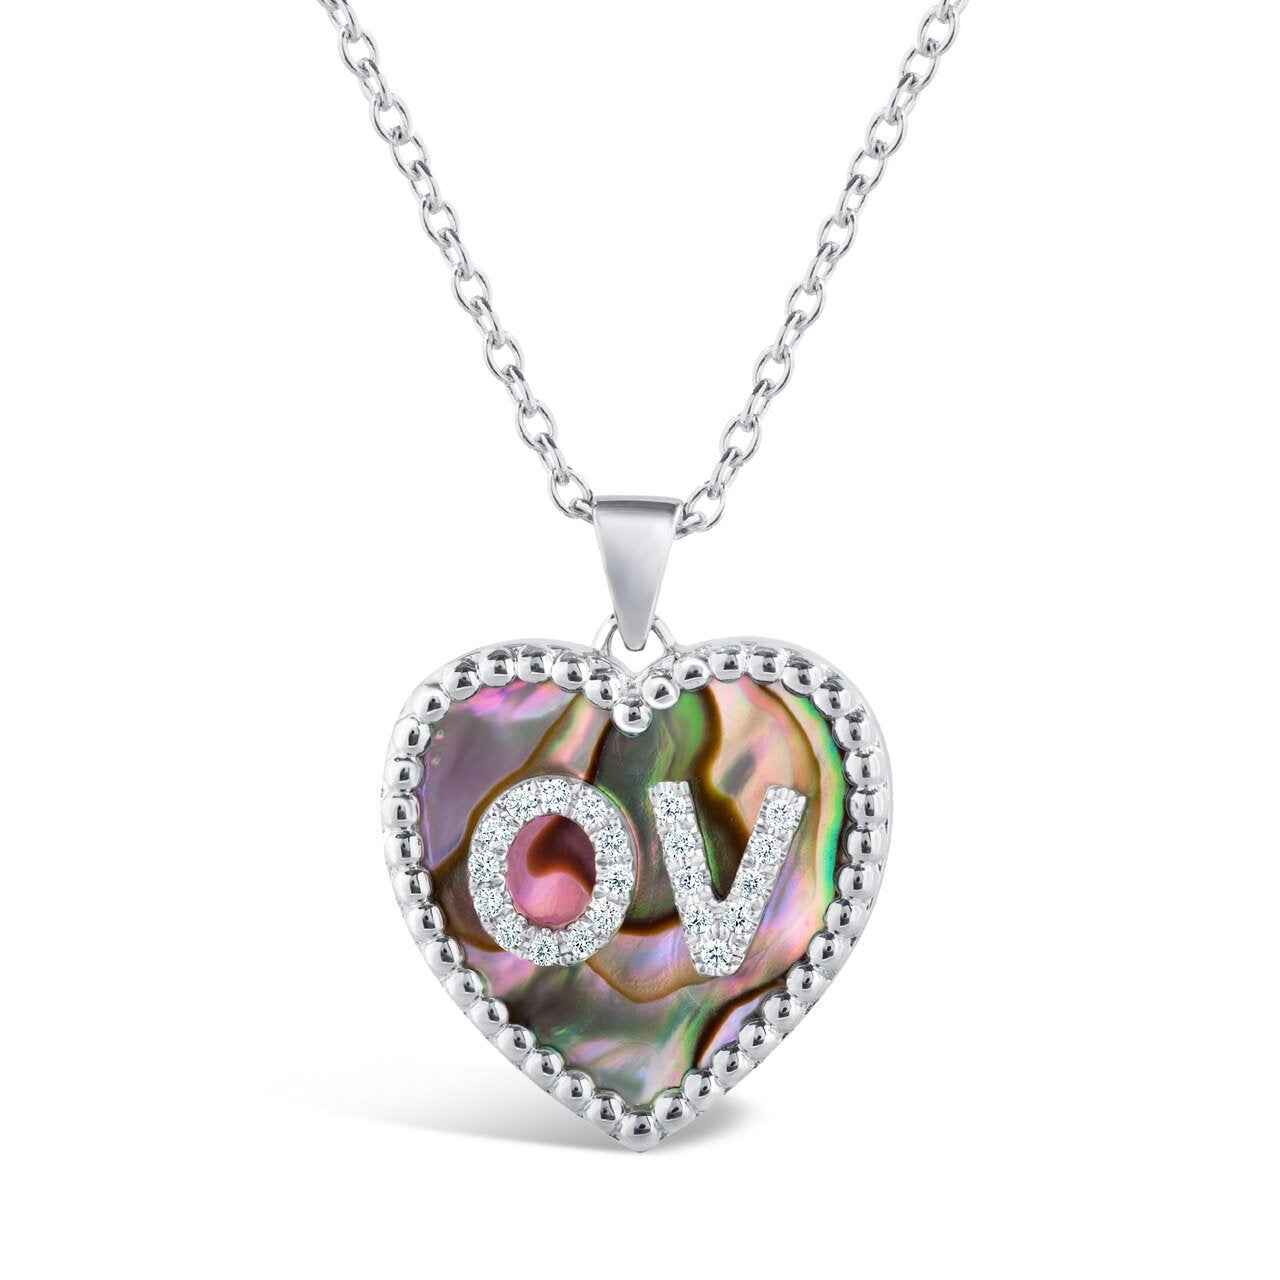 Medium Mother of Pearl Diamond Heart Double Initial Pendant